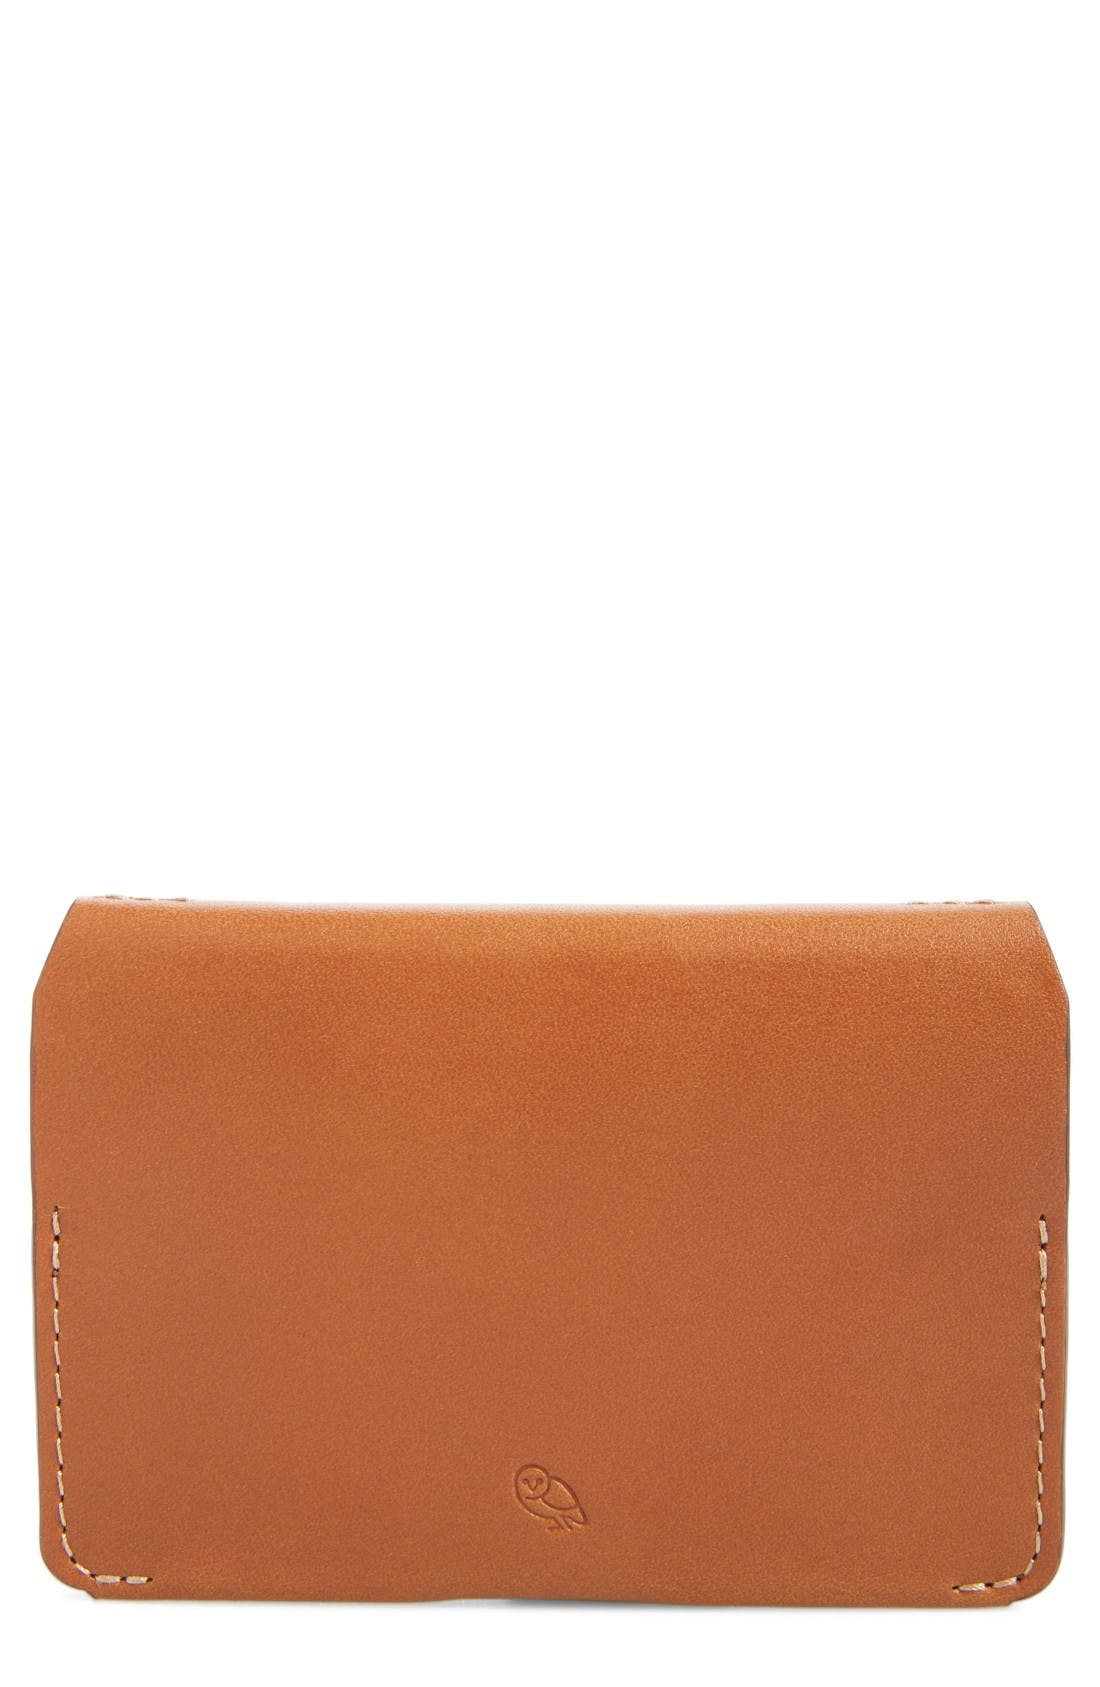 Bellroy Leather Card Case